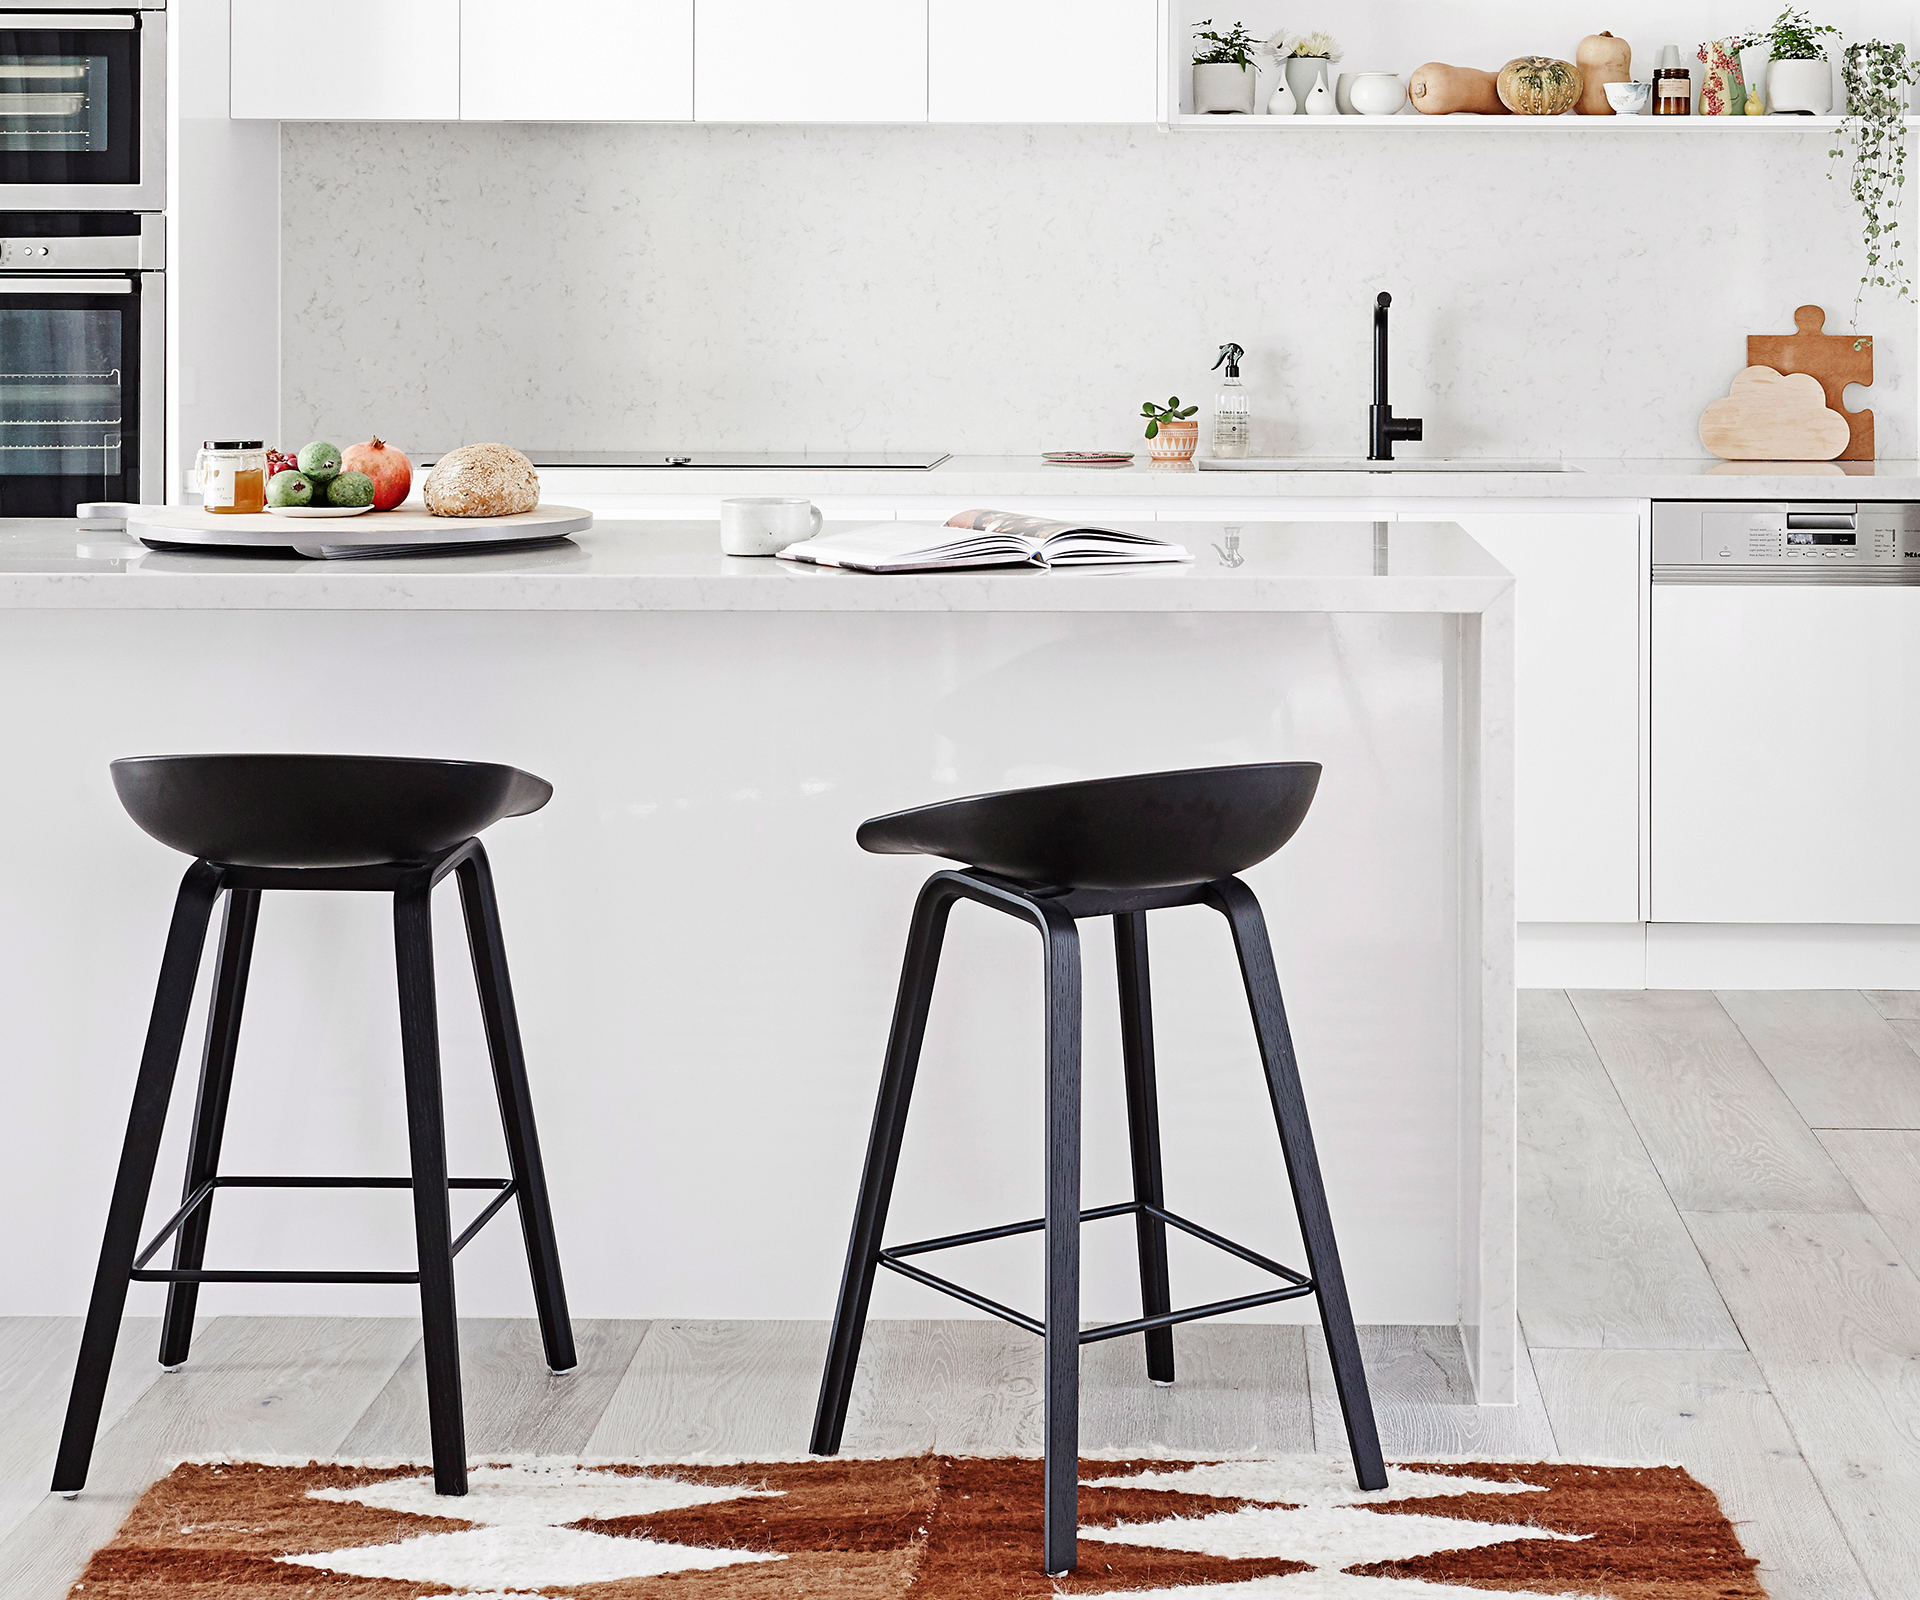 11 kitchen bar stools and how to choose the right one